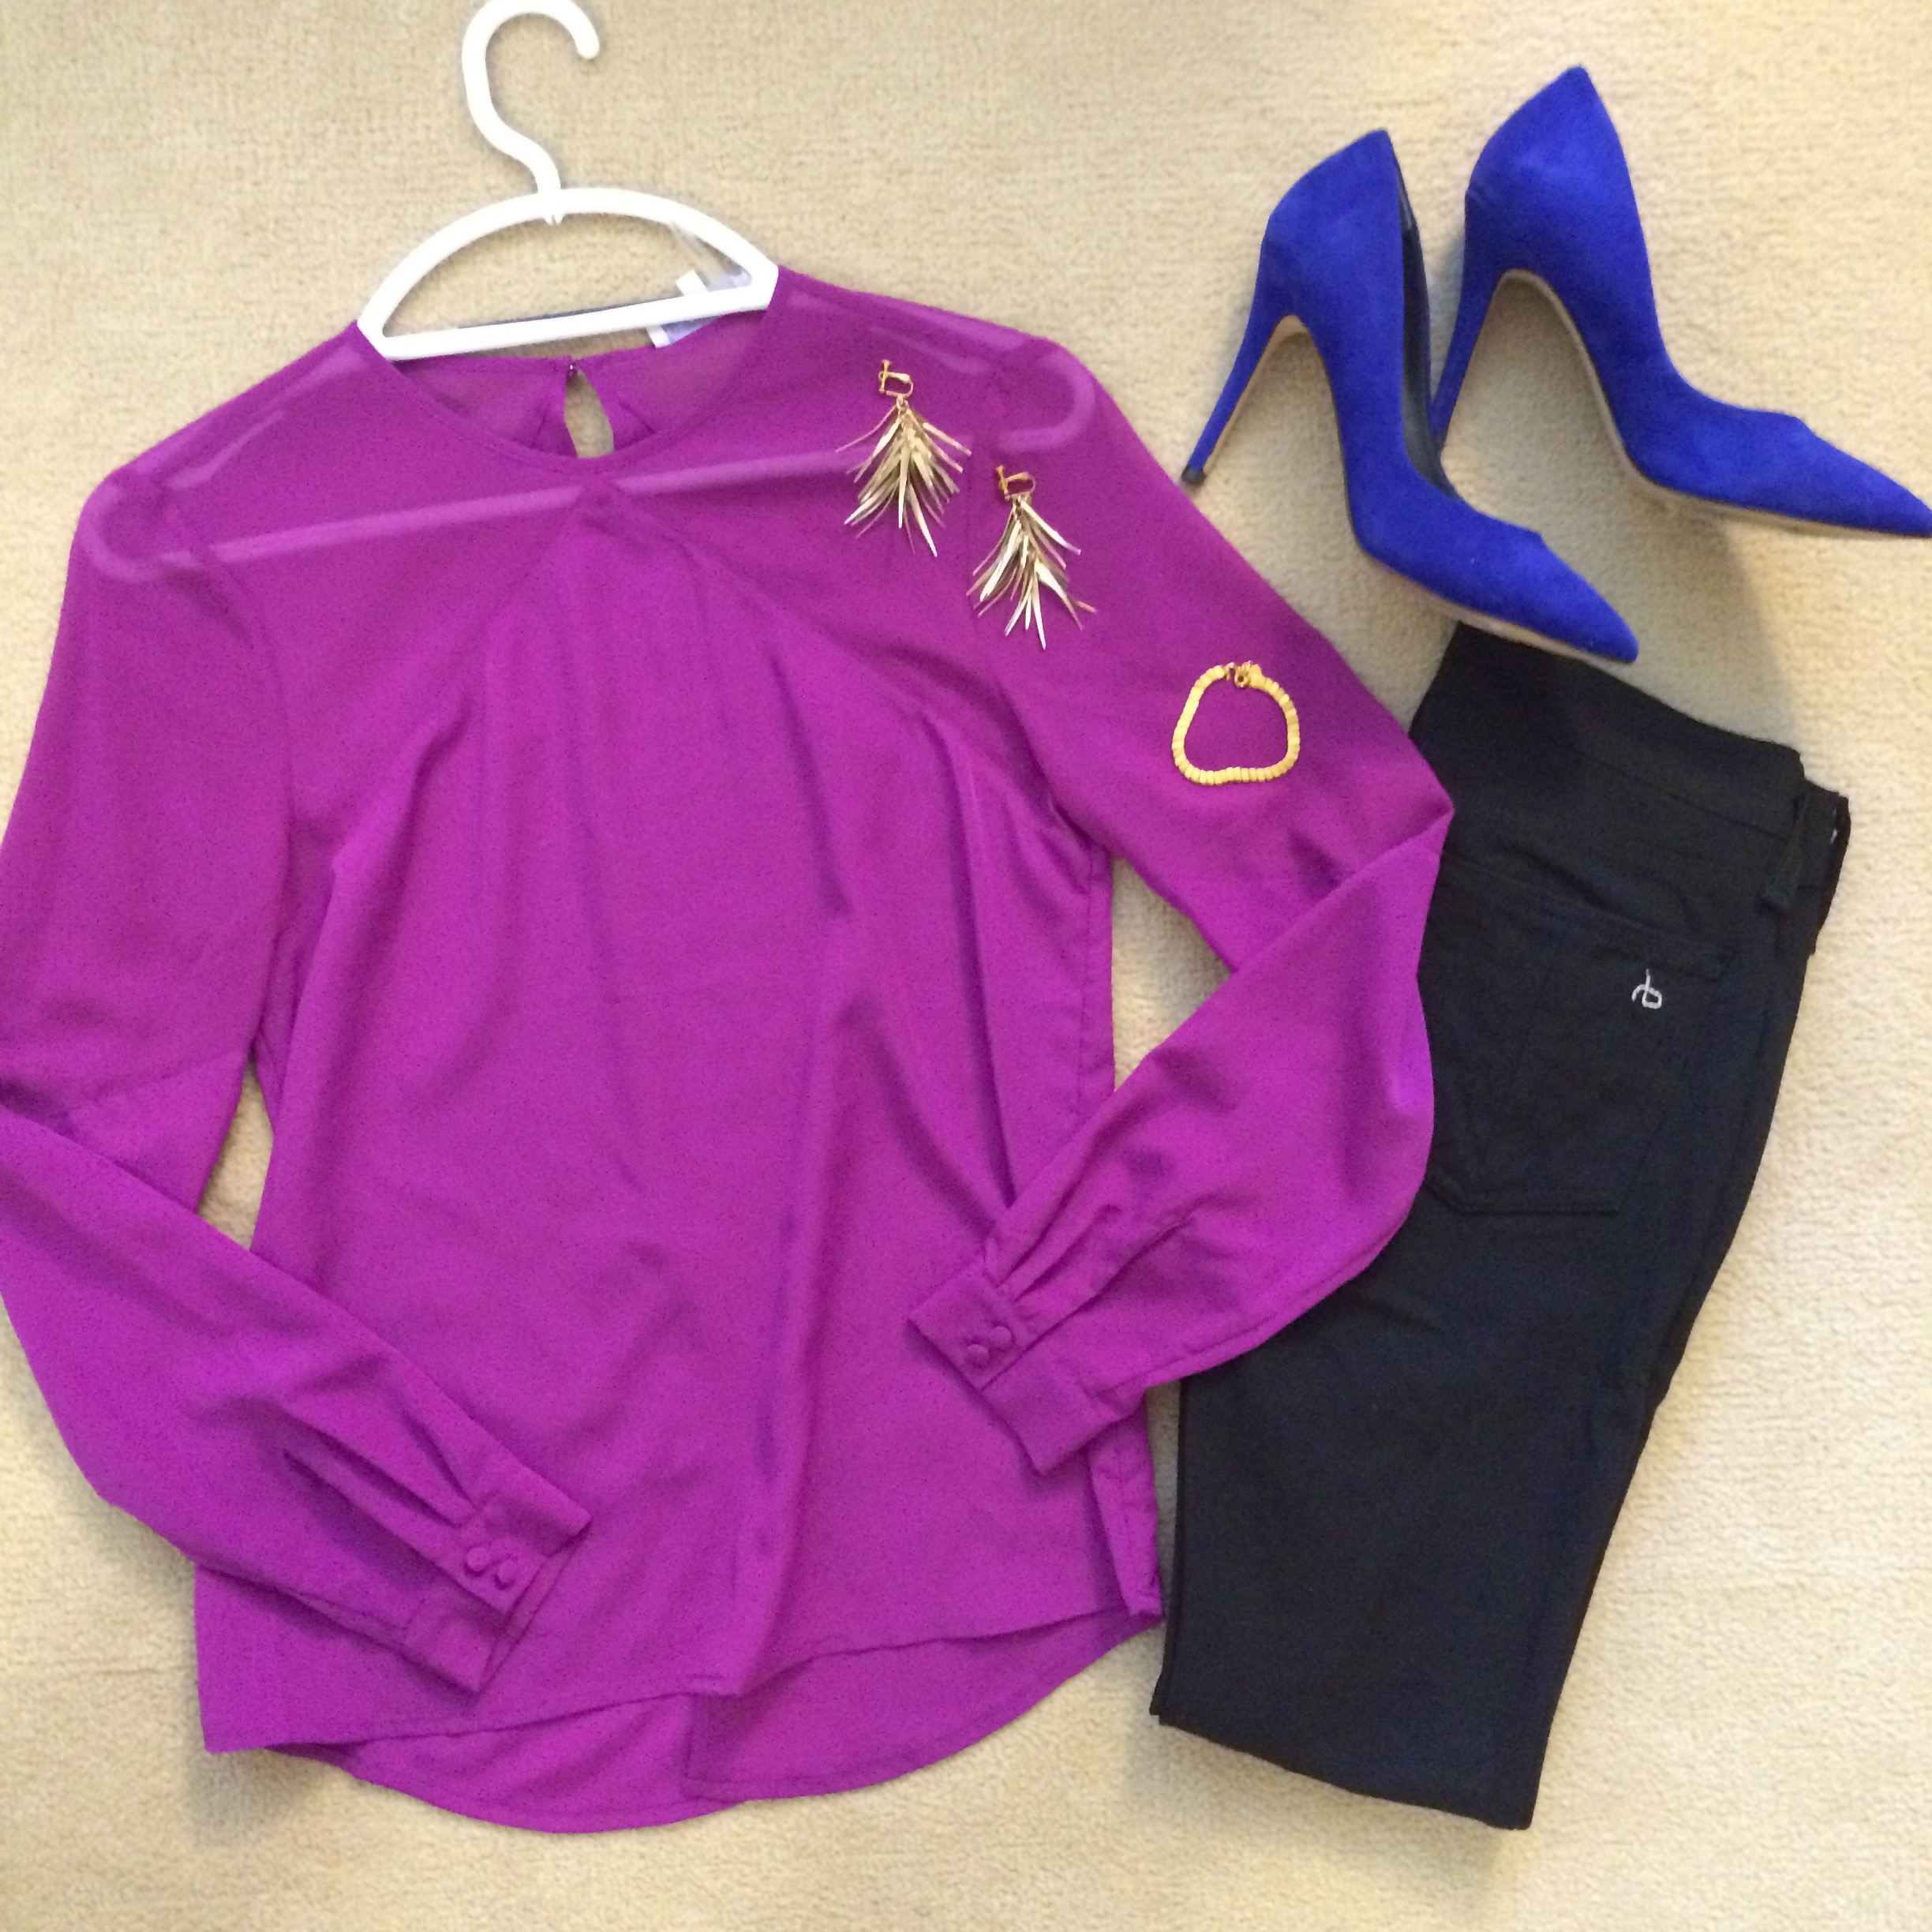 If you prefer to stick to one major dose of color in your clothes, how about a pop color accessory? I love the way the cobalt heels add something extra to the look, much more than black heels would. Playing with color expresses your personality, lets them know you're a bit daring, and that you don't mind being the center of attention!